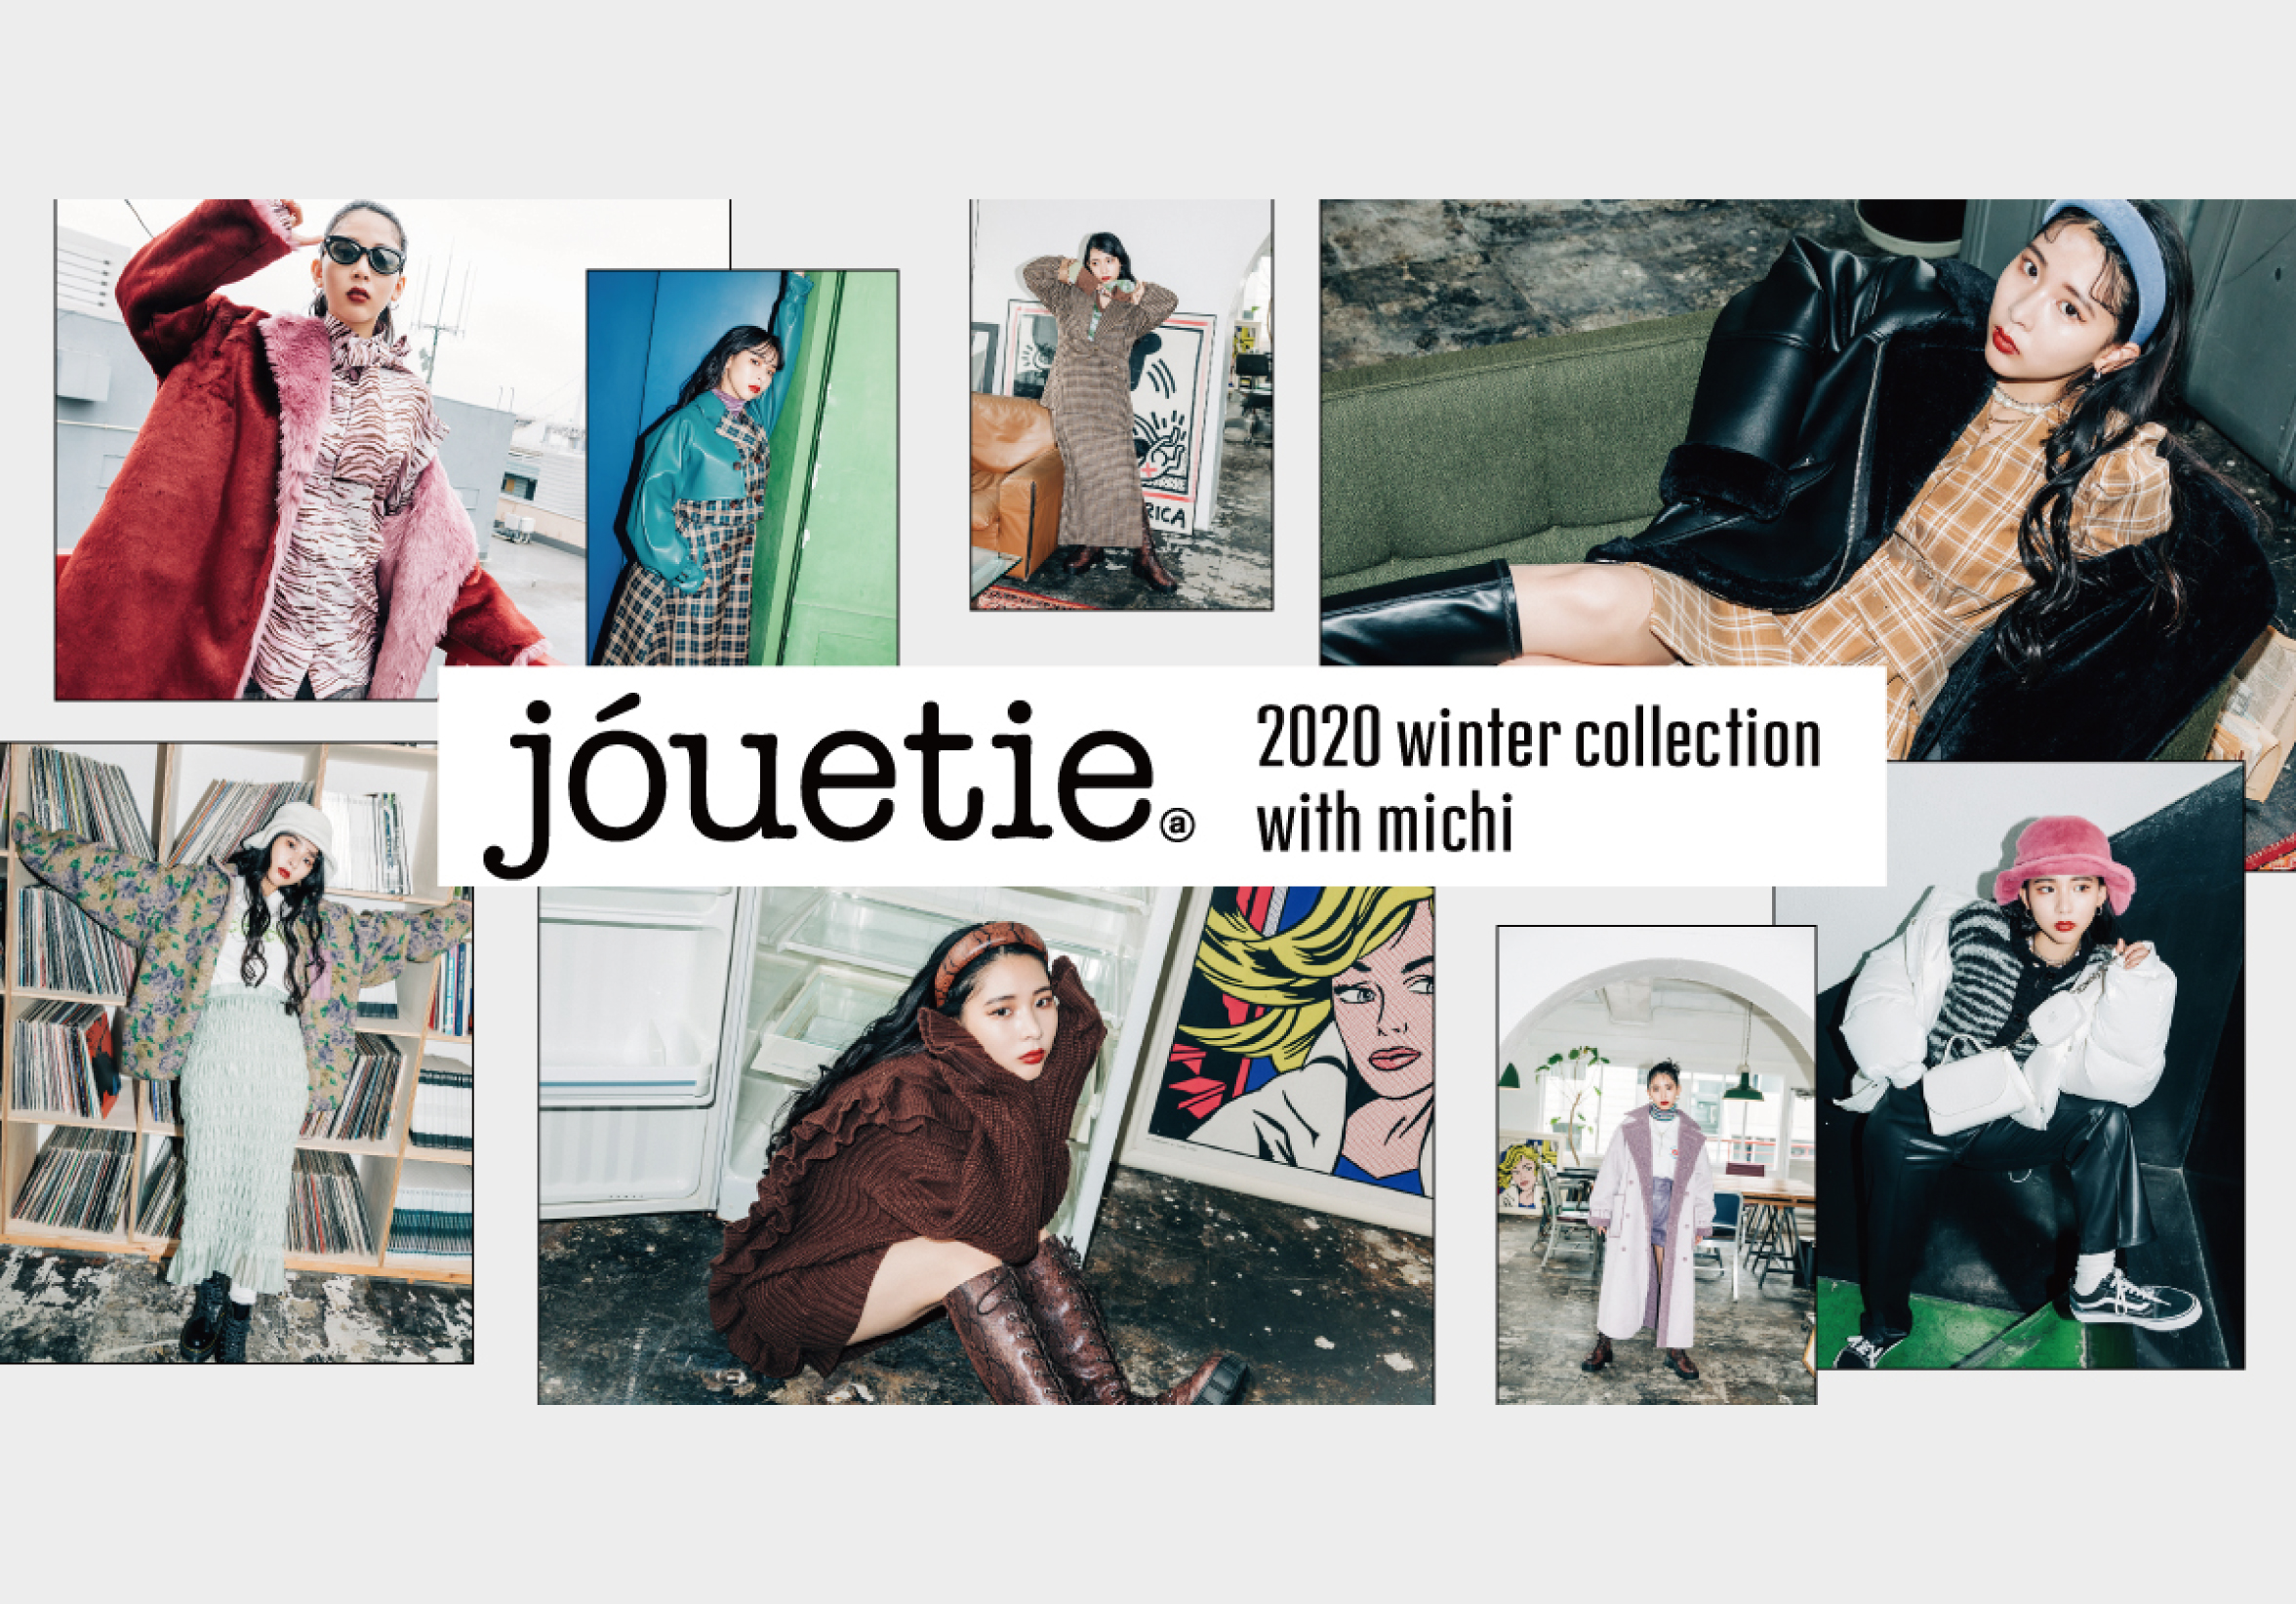 【2020Winter collection with michi】